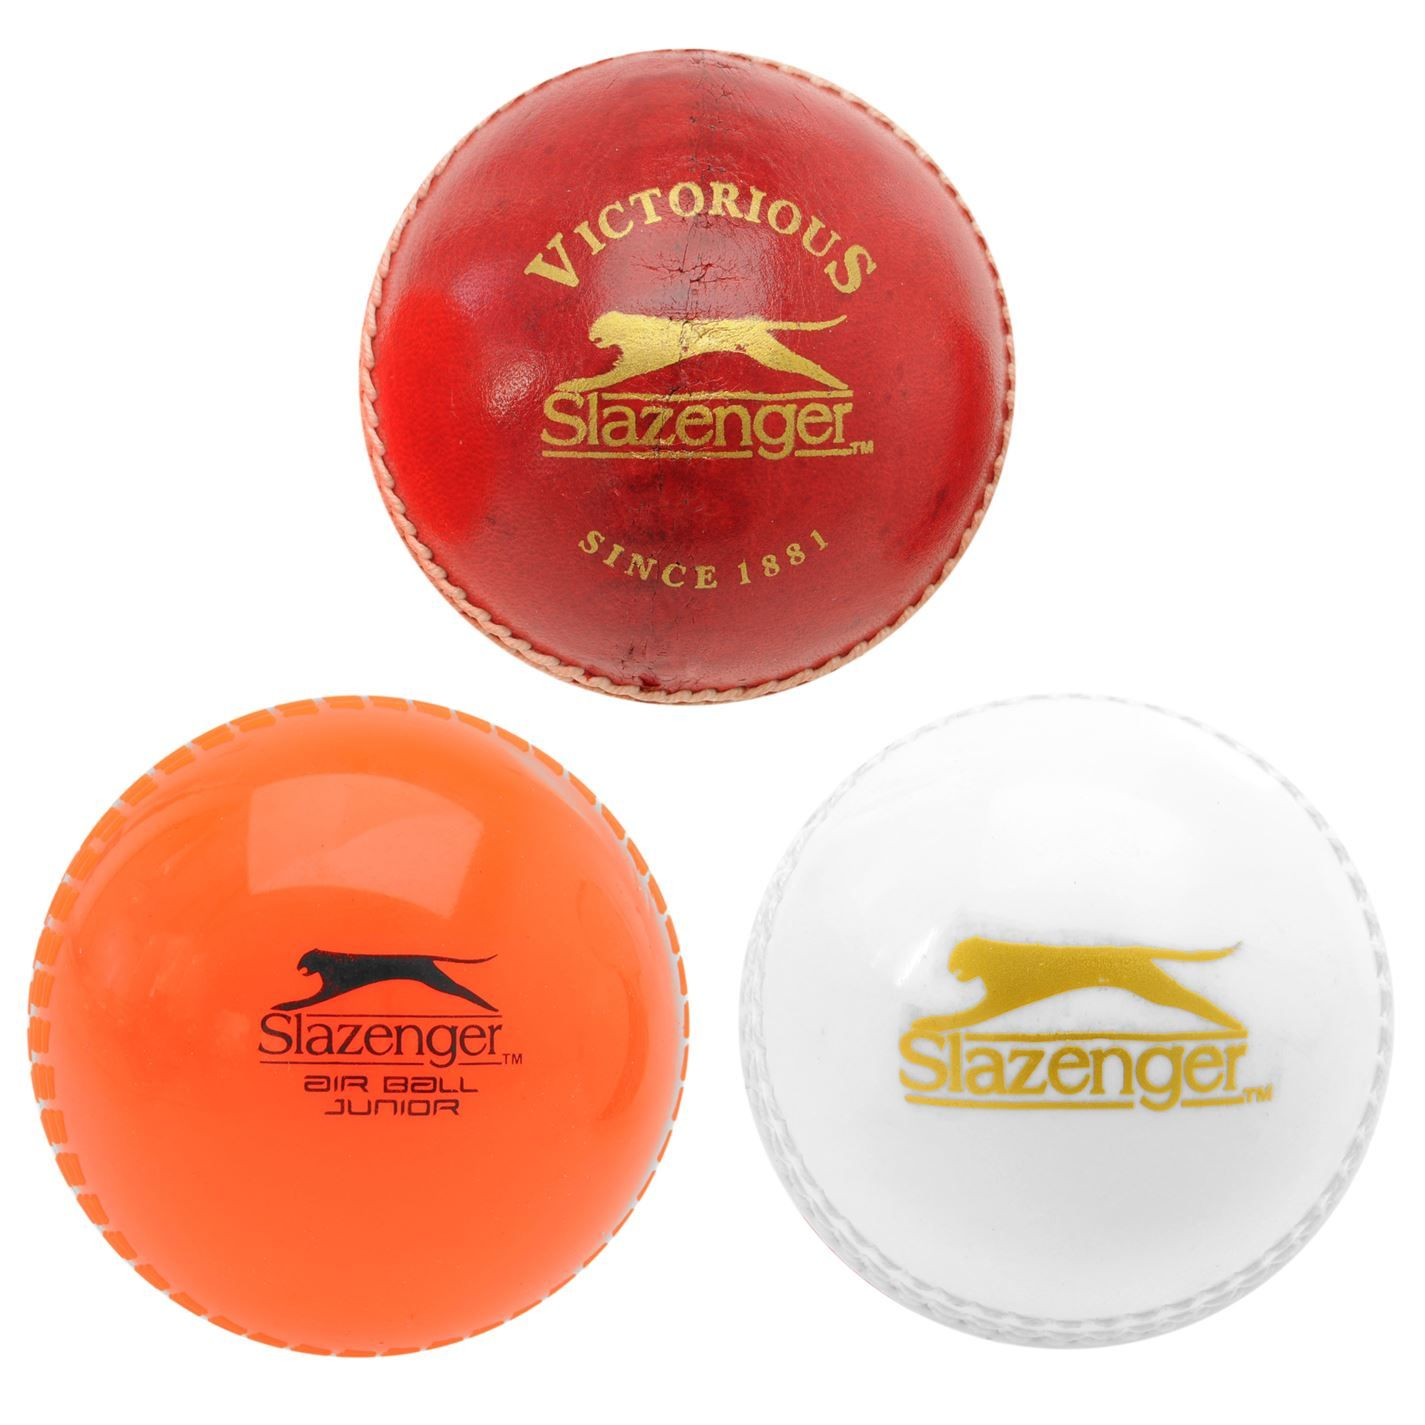 pack of 3 skills cricket balls Cricket Ball Gift set